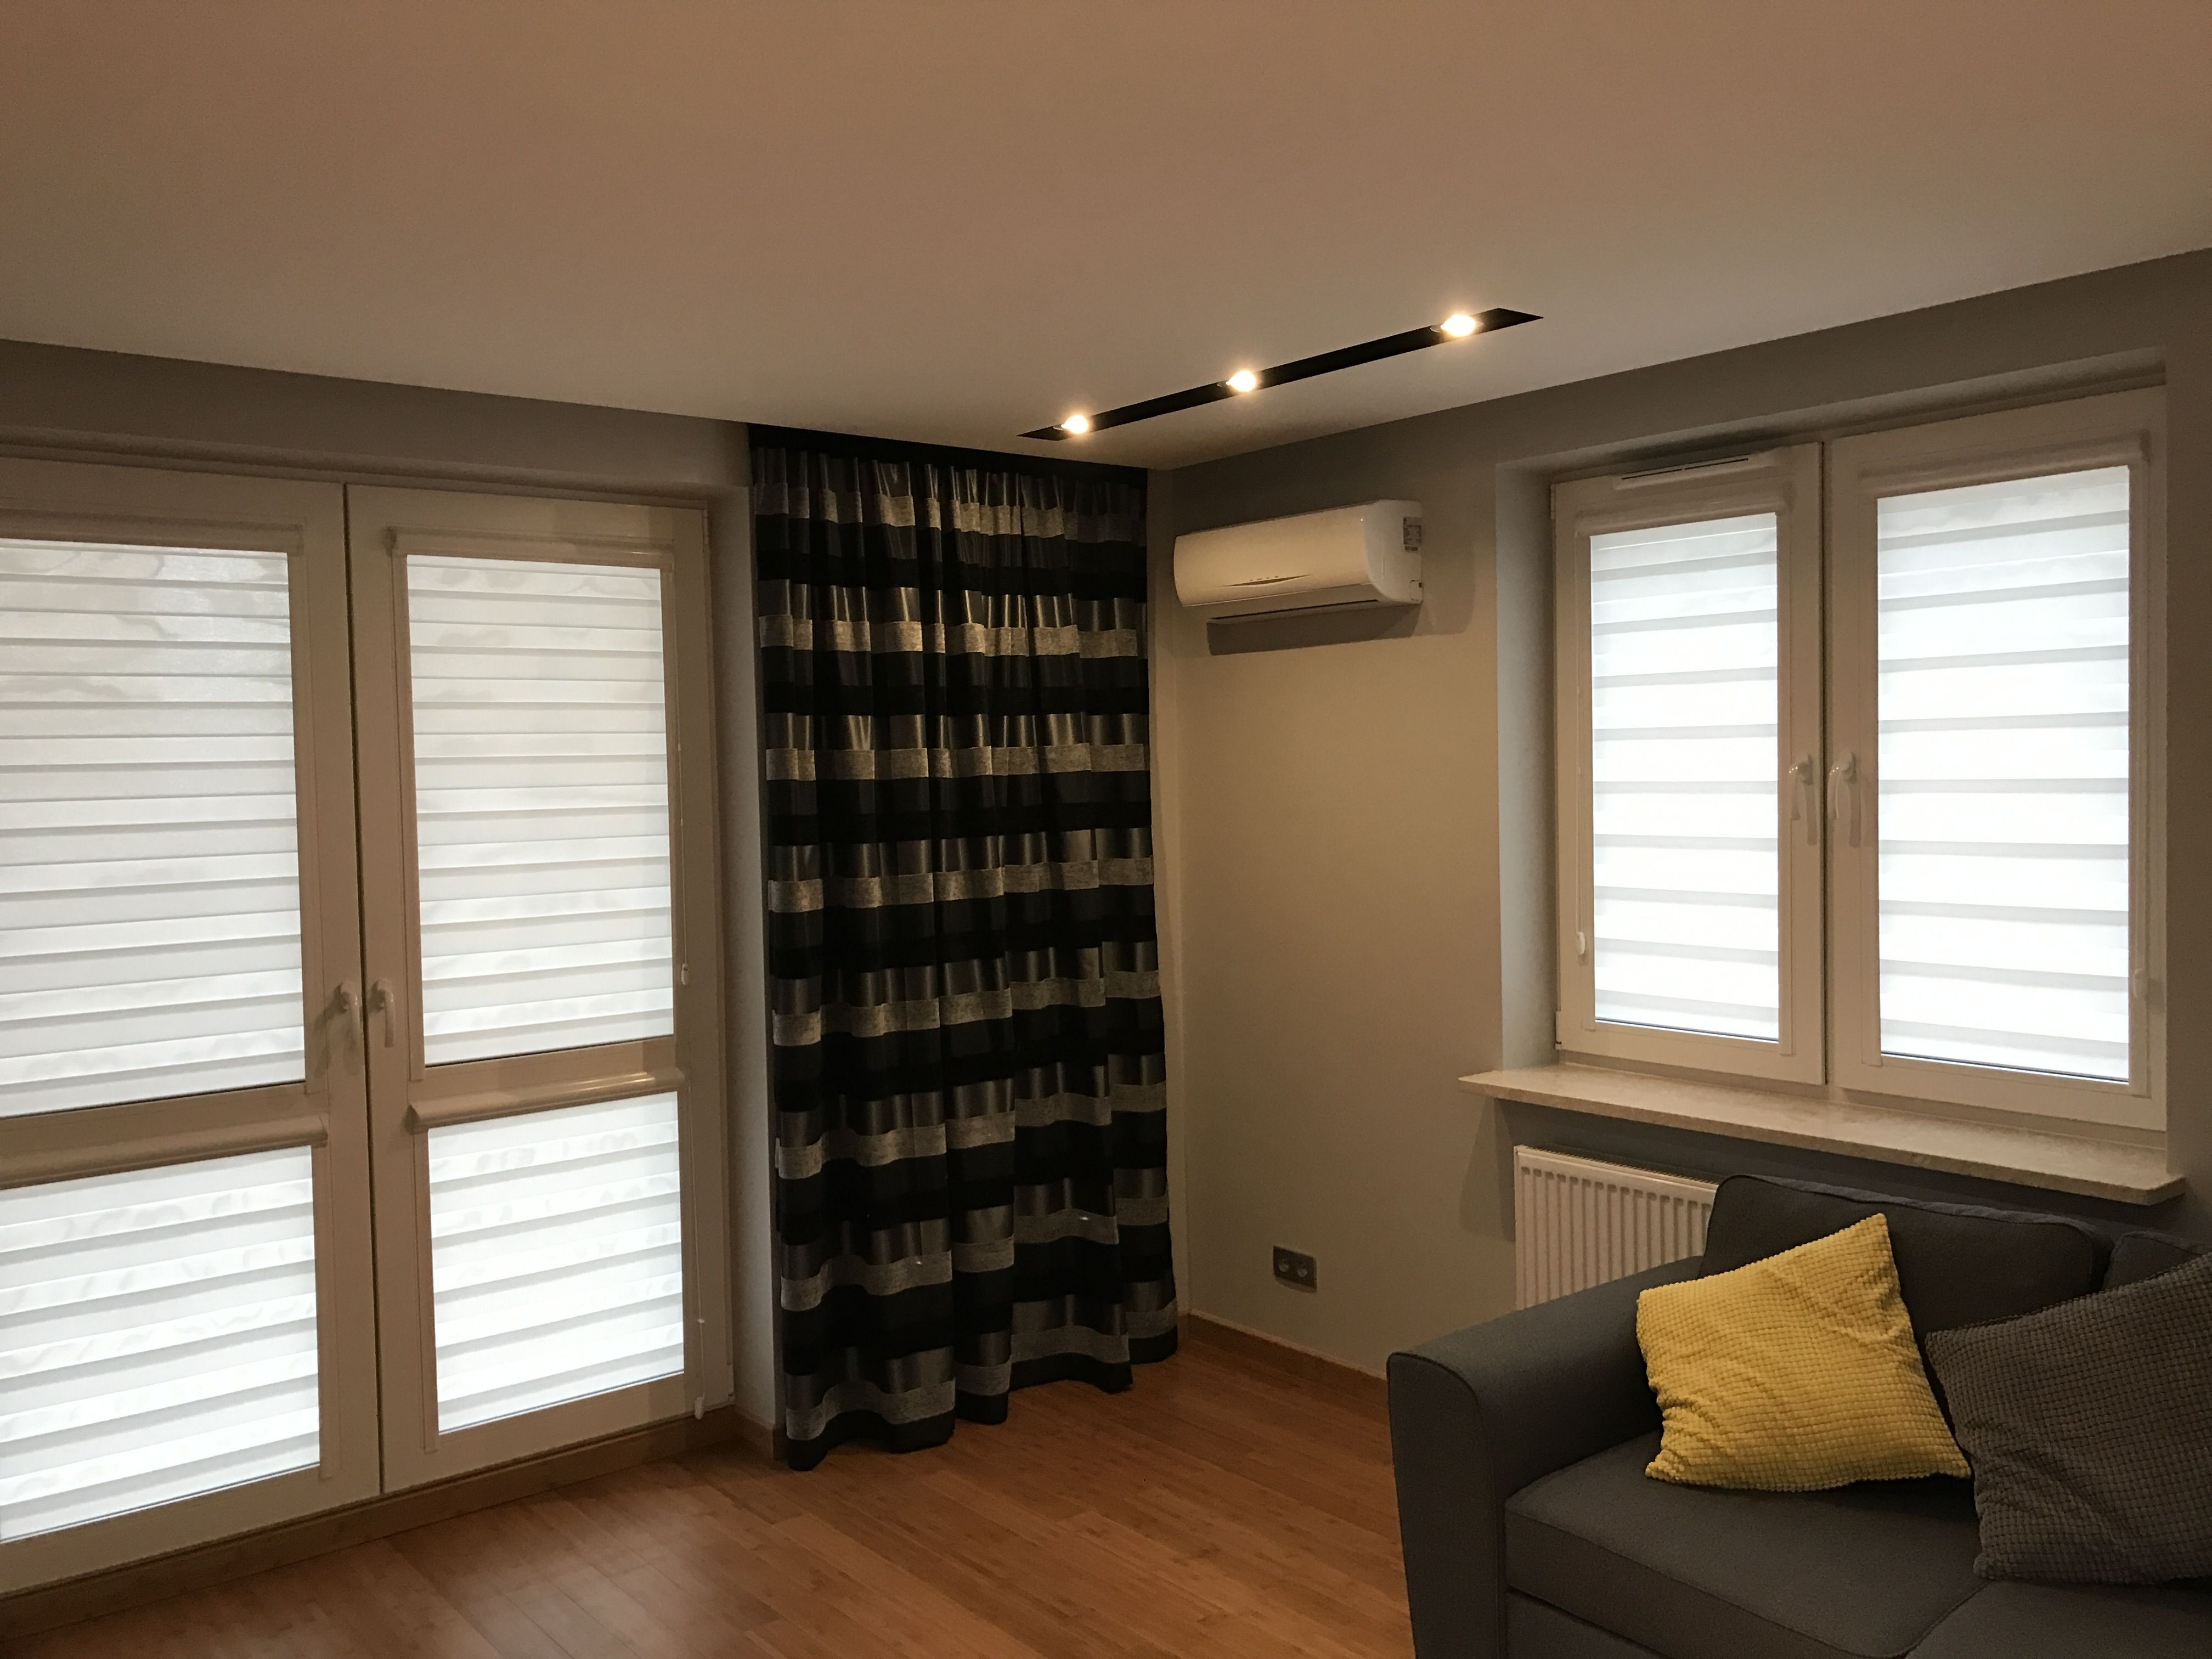 for blinds home pin to rollerblind window budget how roller choose shades your utah